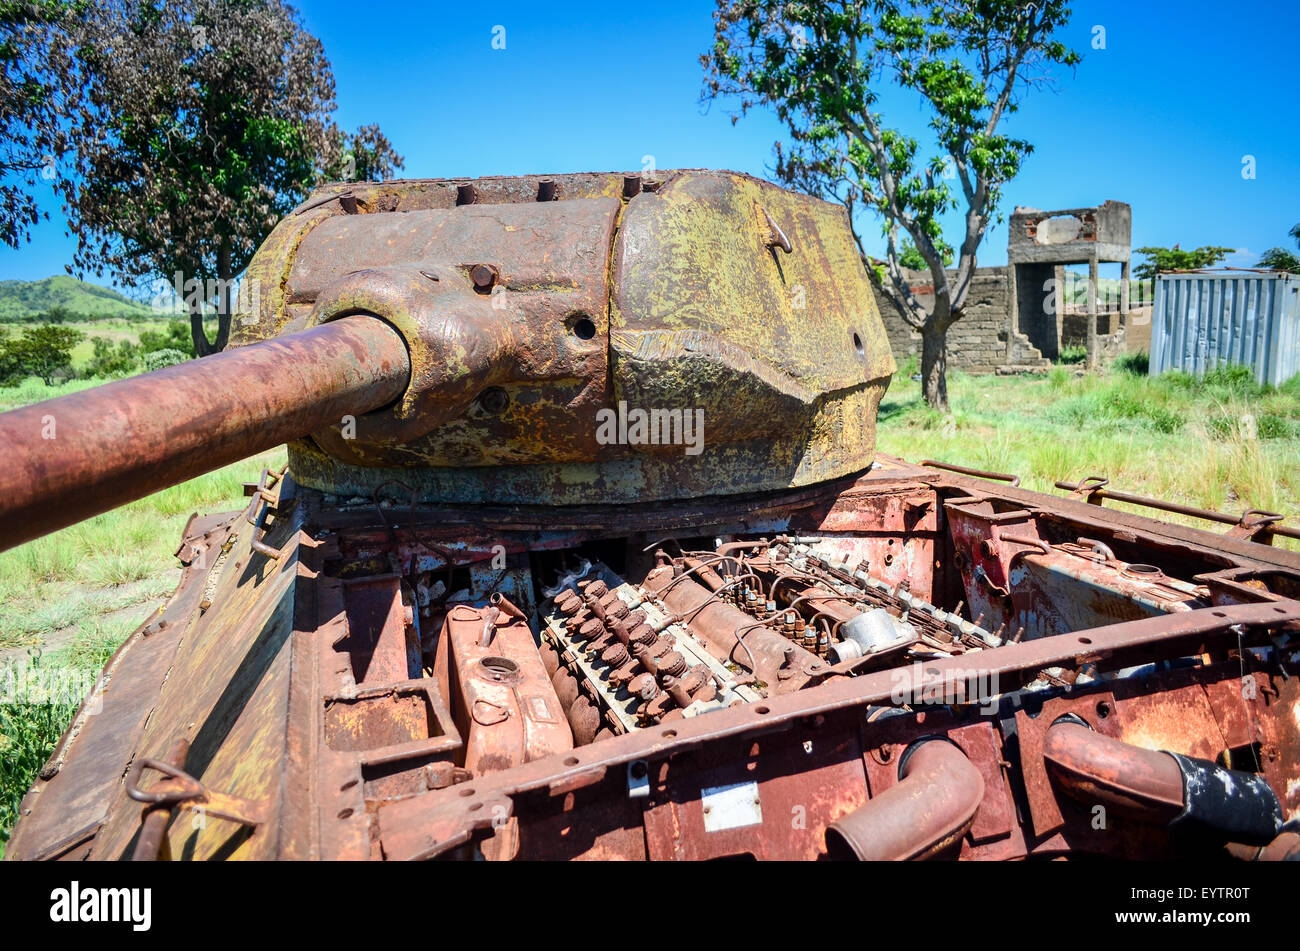 Abandoned rusty tank in Angola, following the civil war - Stock Image